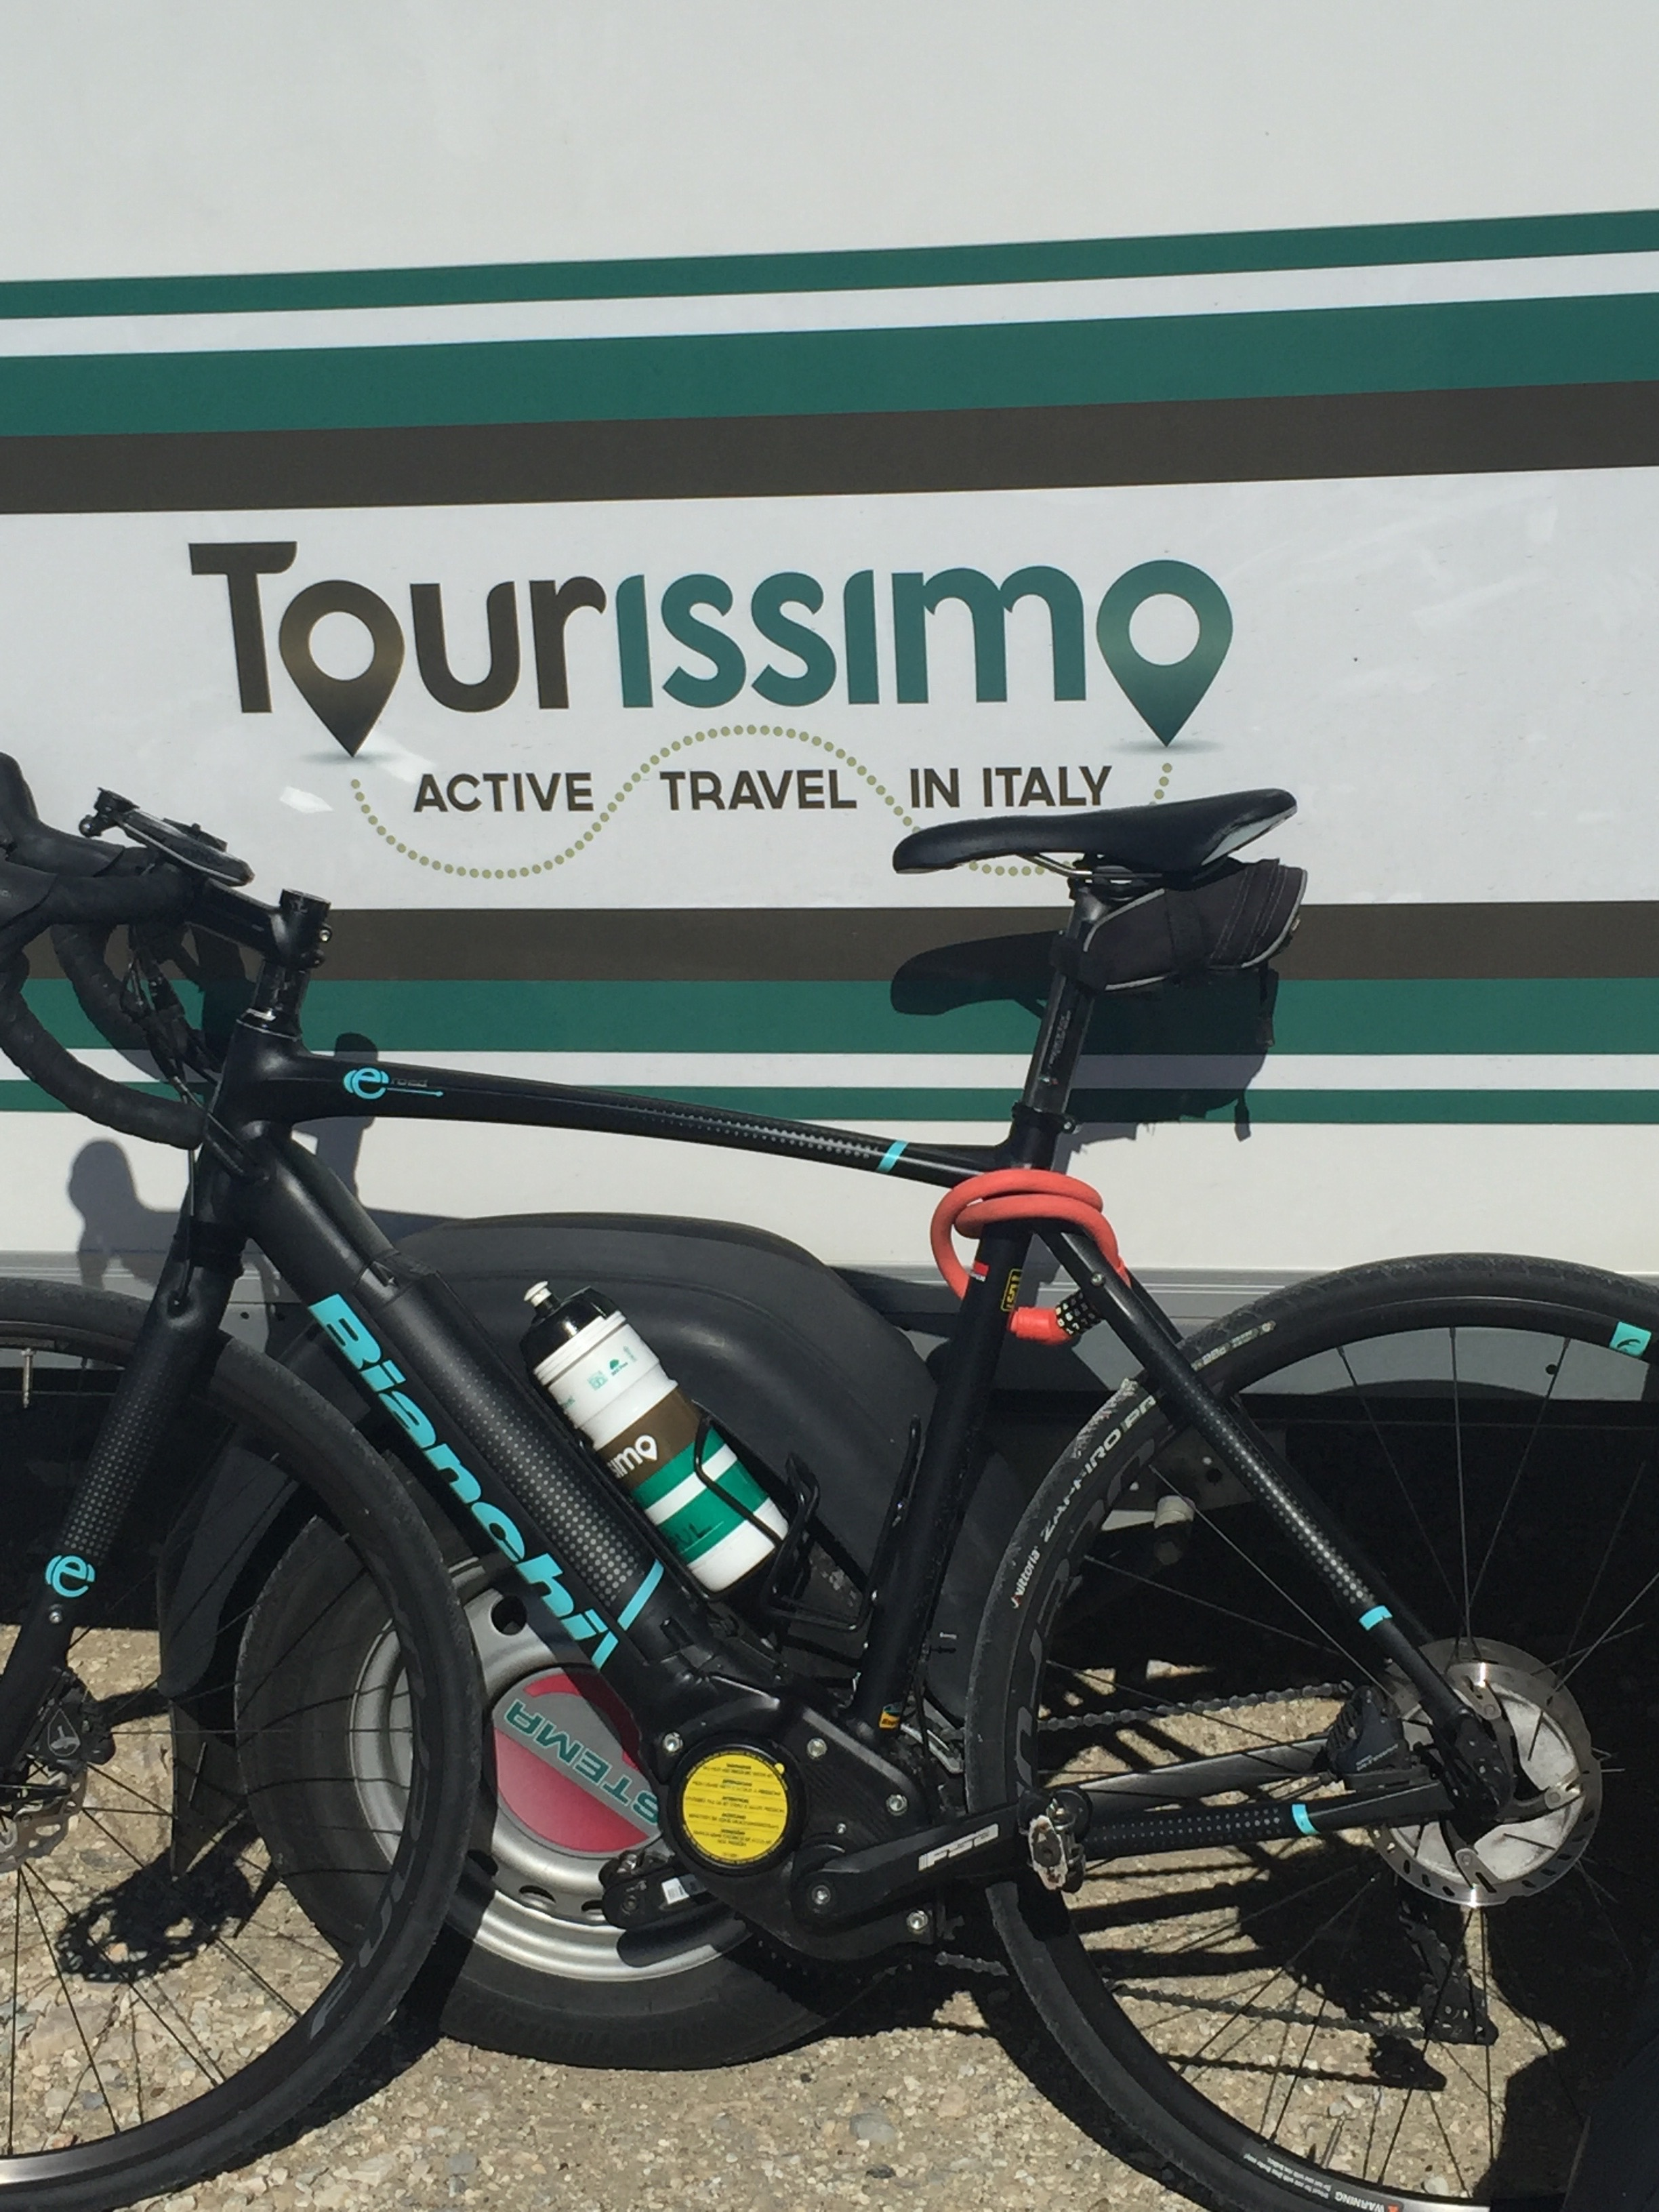 My first experience of an e-bike, thanks to Tourissimo